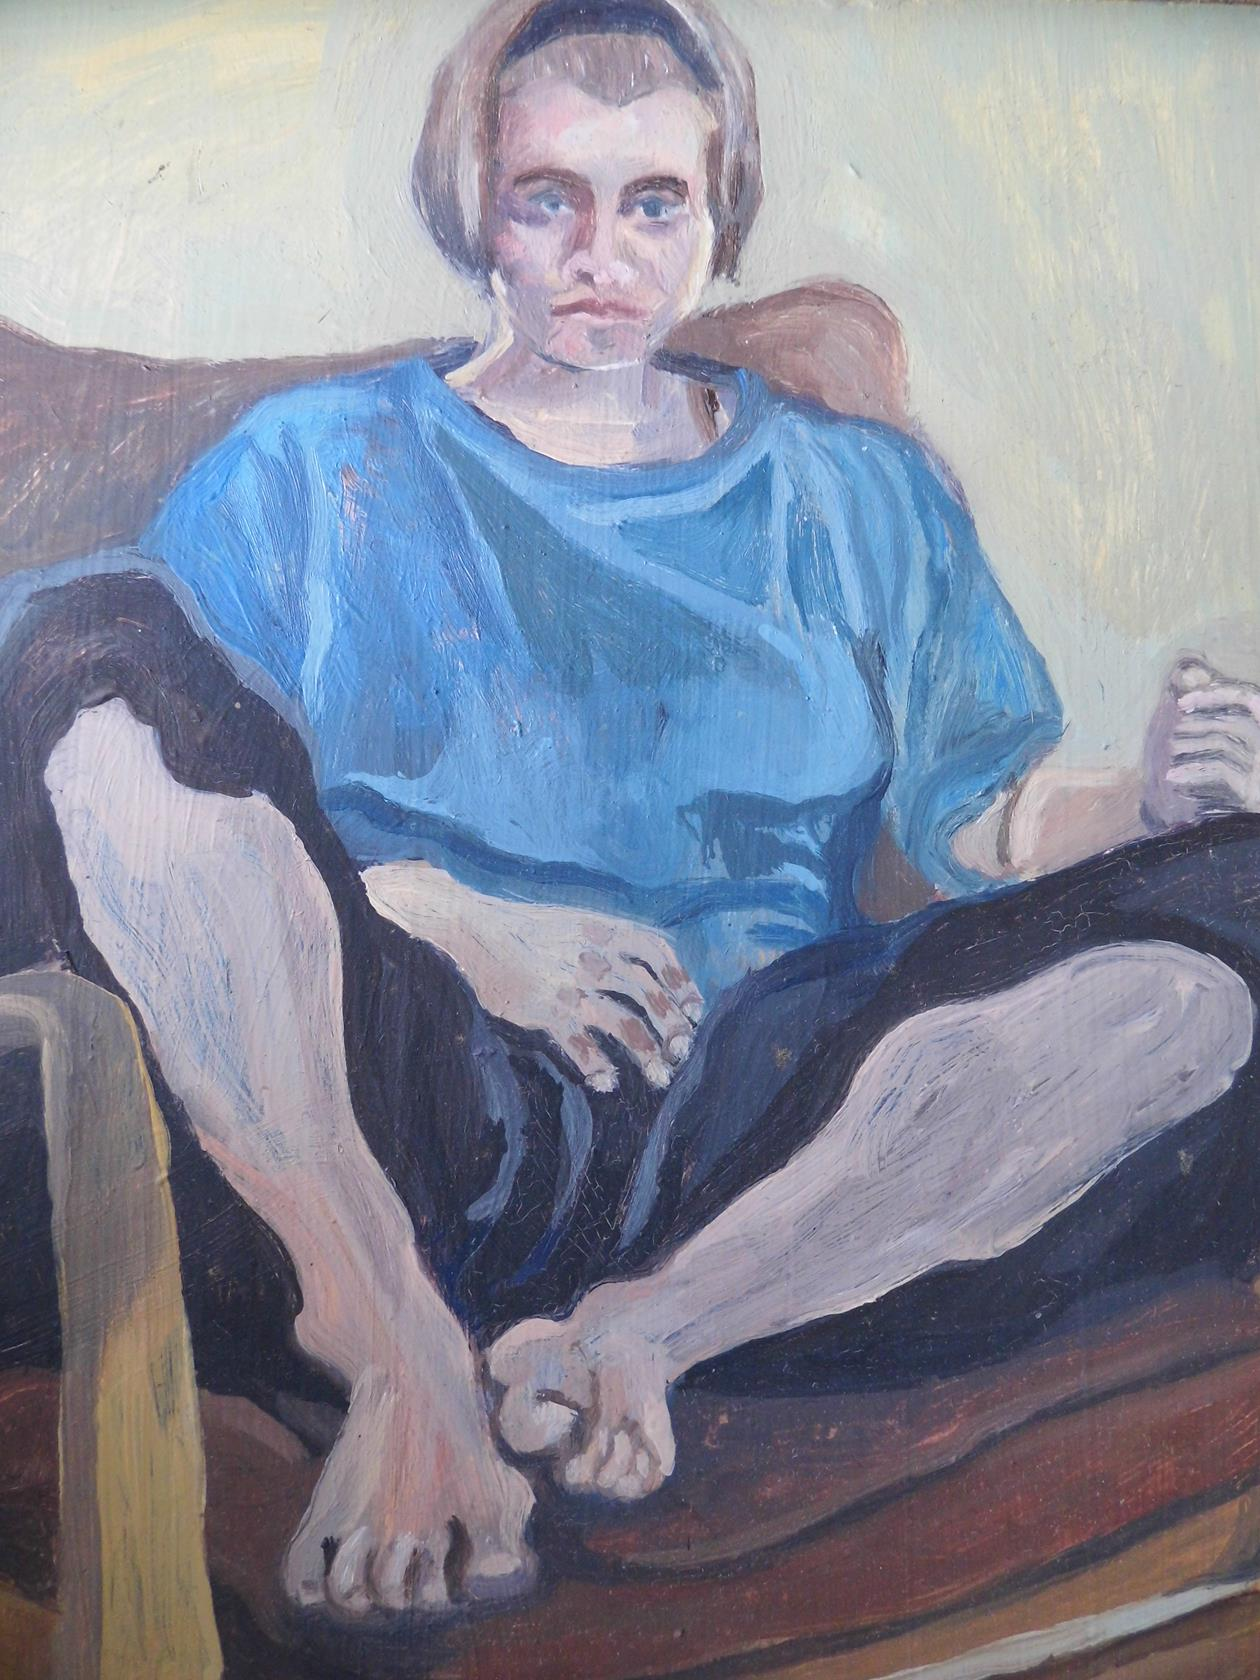 'Trying To Be Laid Back But Also A Doyen Of Intellect And Authority' From the Trying To Series Oil on Board 1995